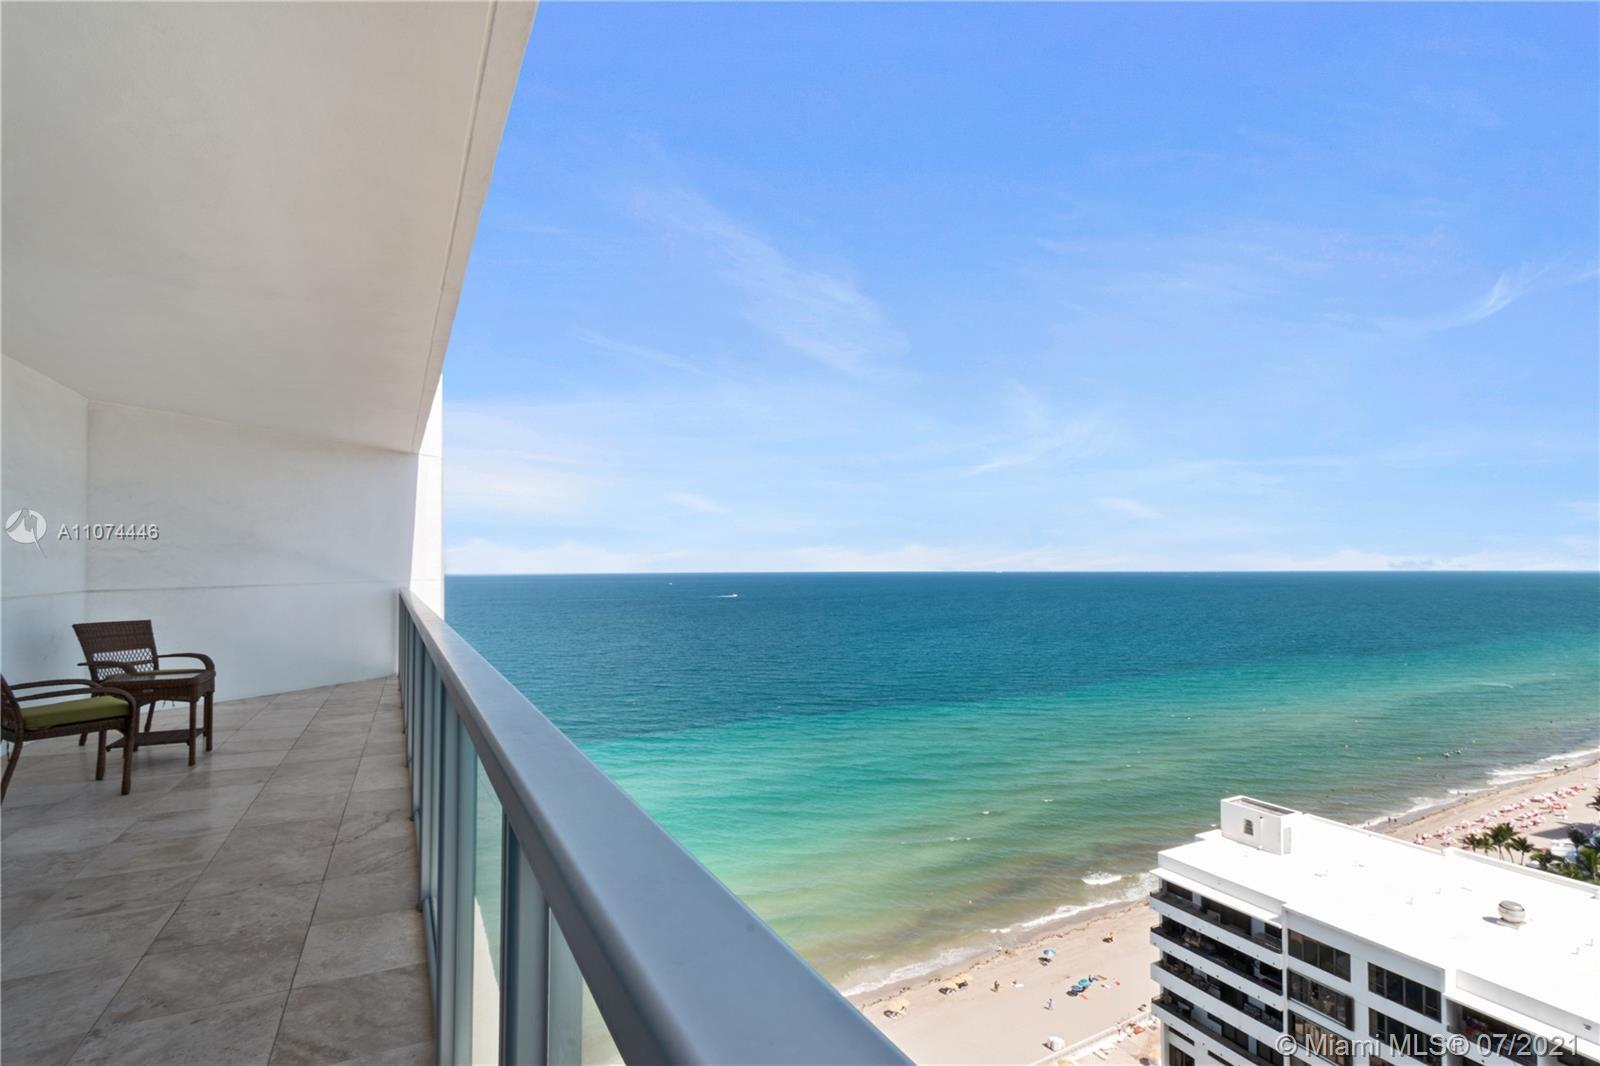 PRIME OCEANFRONT LOCATION WITH WATERVIEWS FROM EVERYROOM. TWO BALCONIES FOR NORTHERN & SOUTHERN EXPO